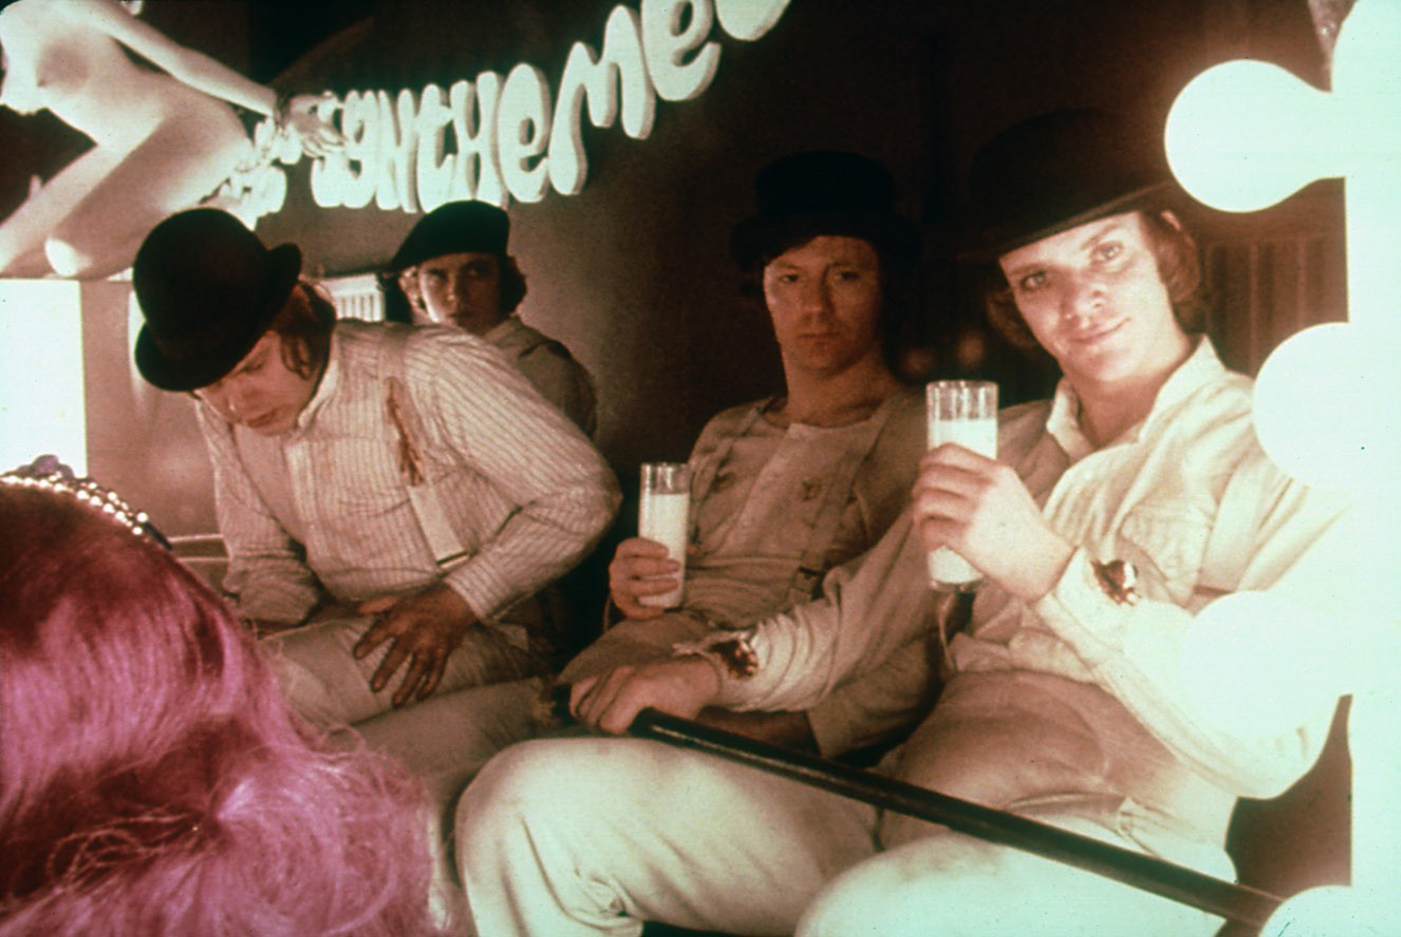 Mick Jagger's 'Clockwork Orange' Petition Signed by Beatles Up for Auction